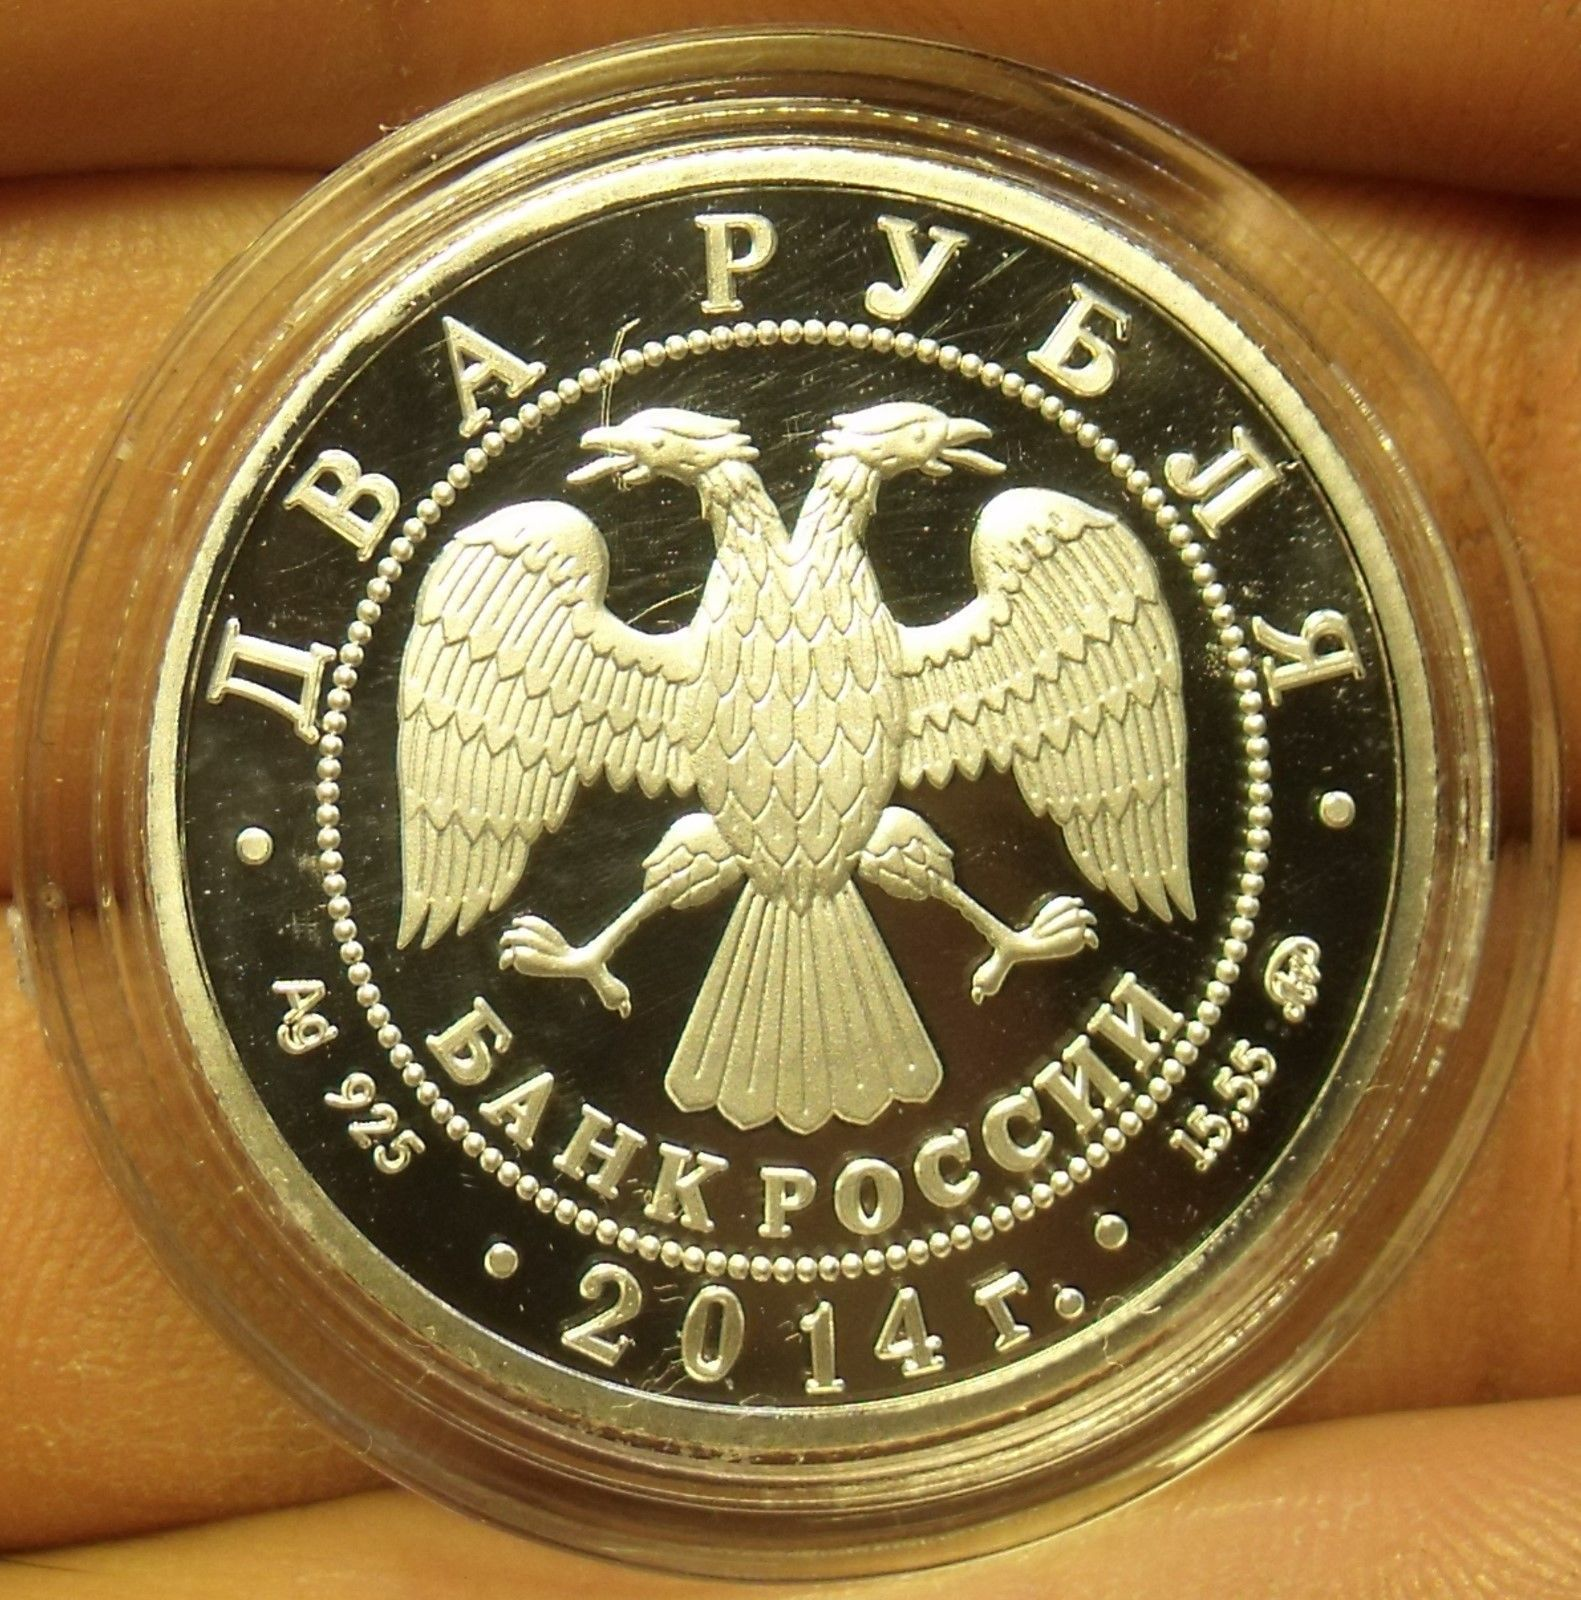 Fantasy Silver-Plated Proof Russia 2014 2 Roubles~Soldatov Sheatfish~Free Ship